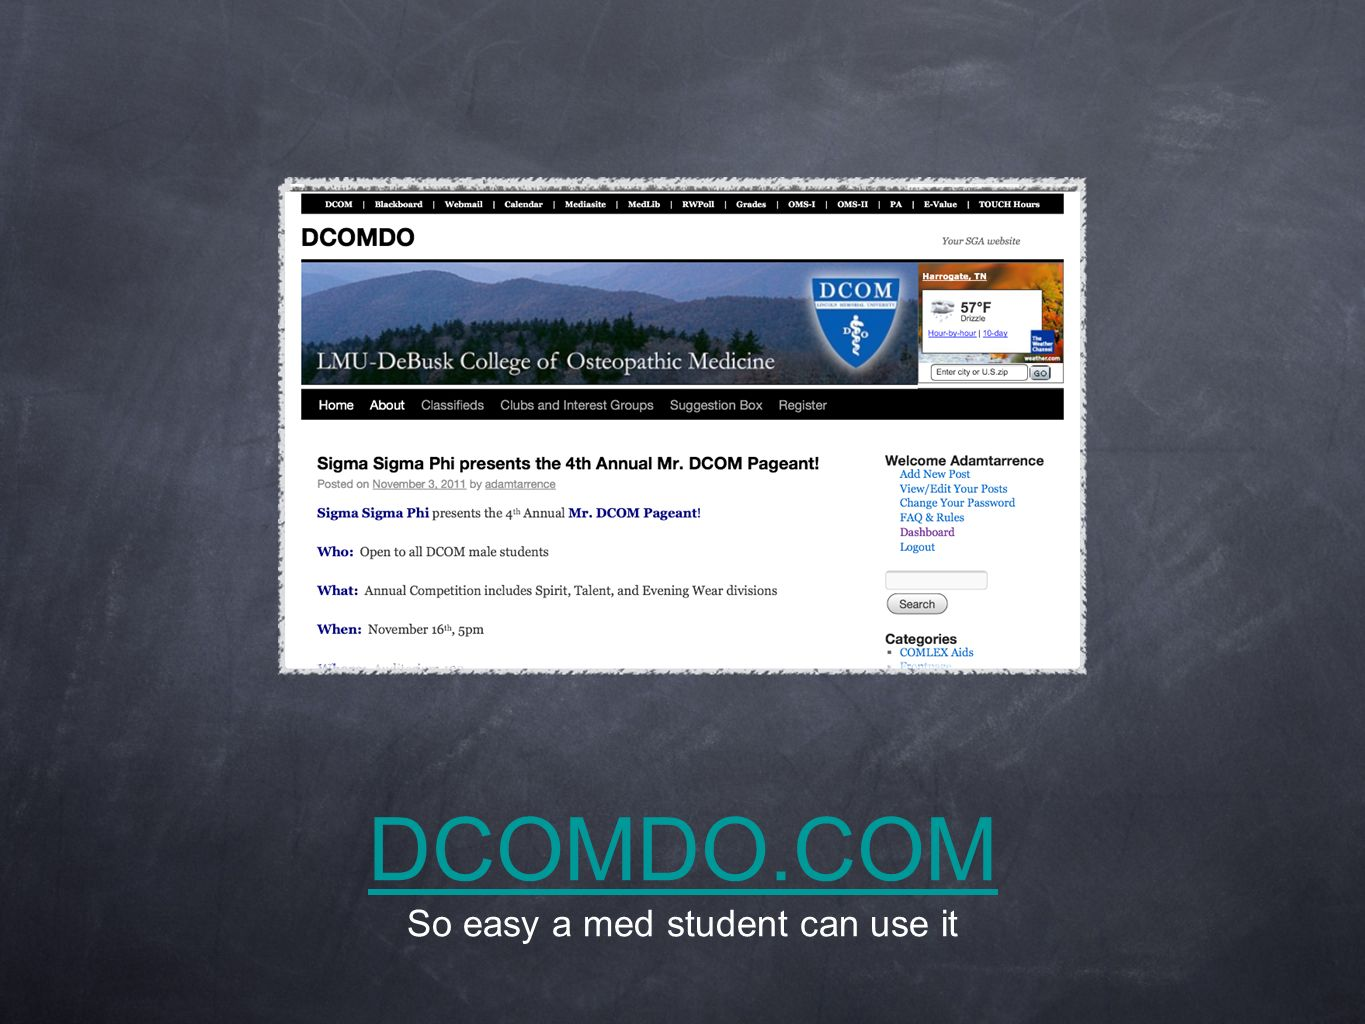 DCOMDO.COM So easy a med student can use it